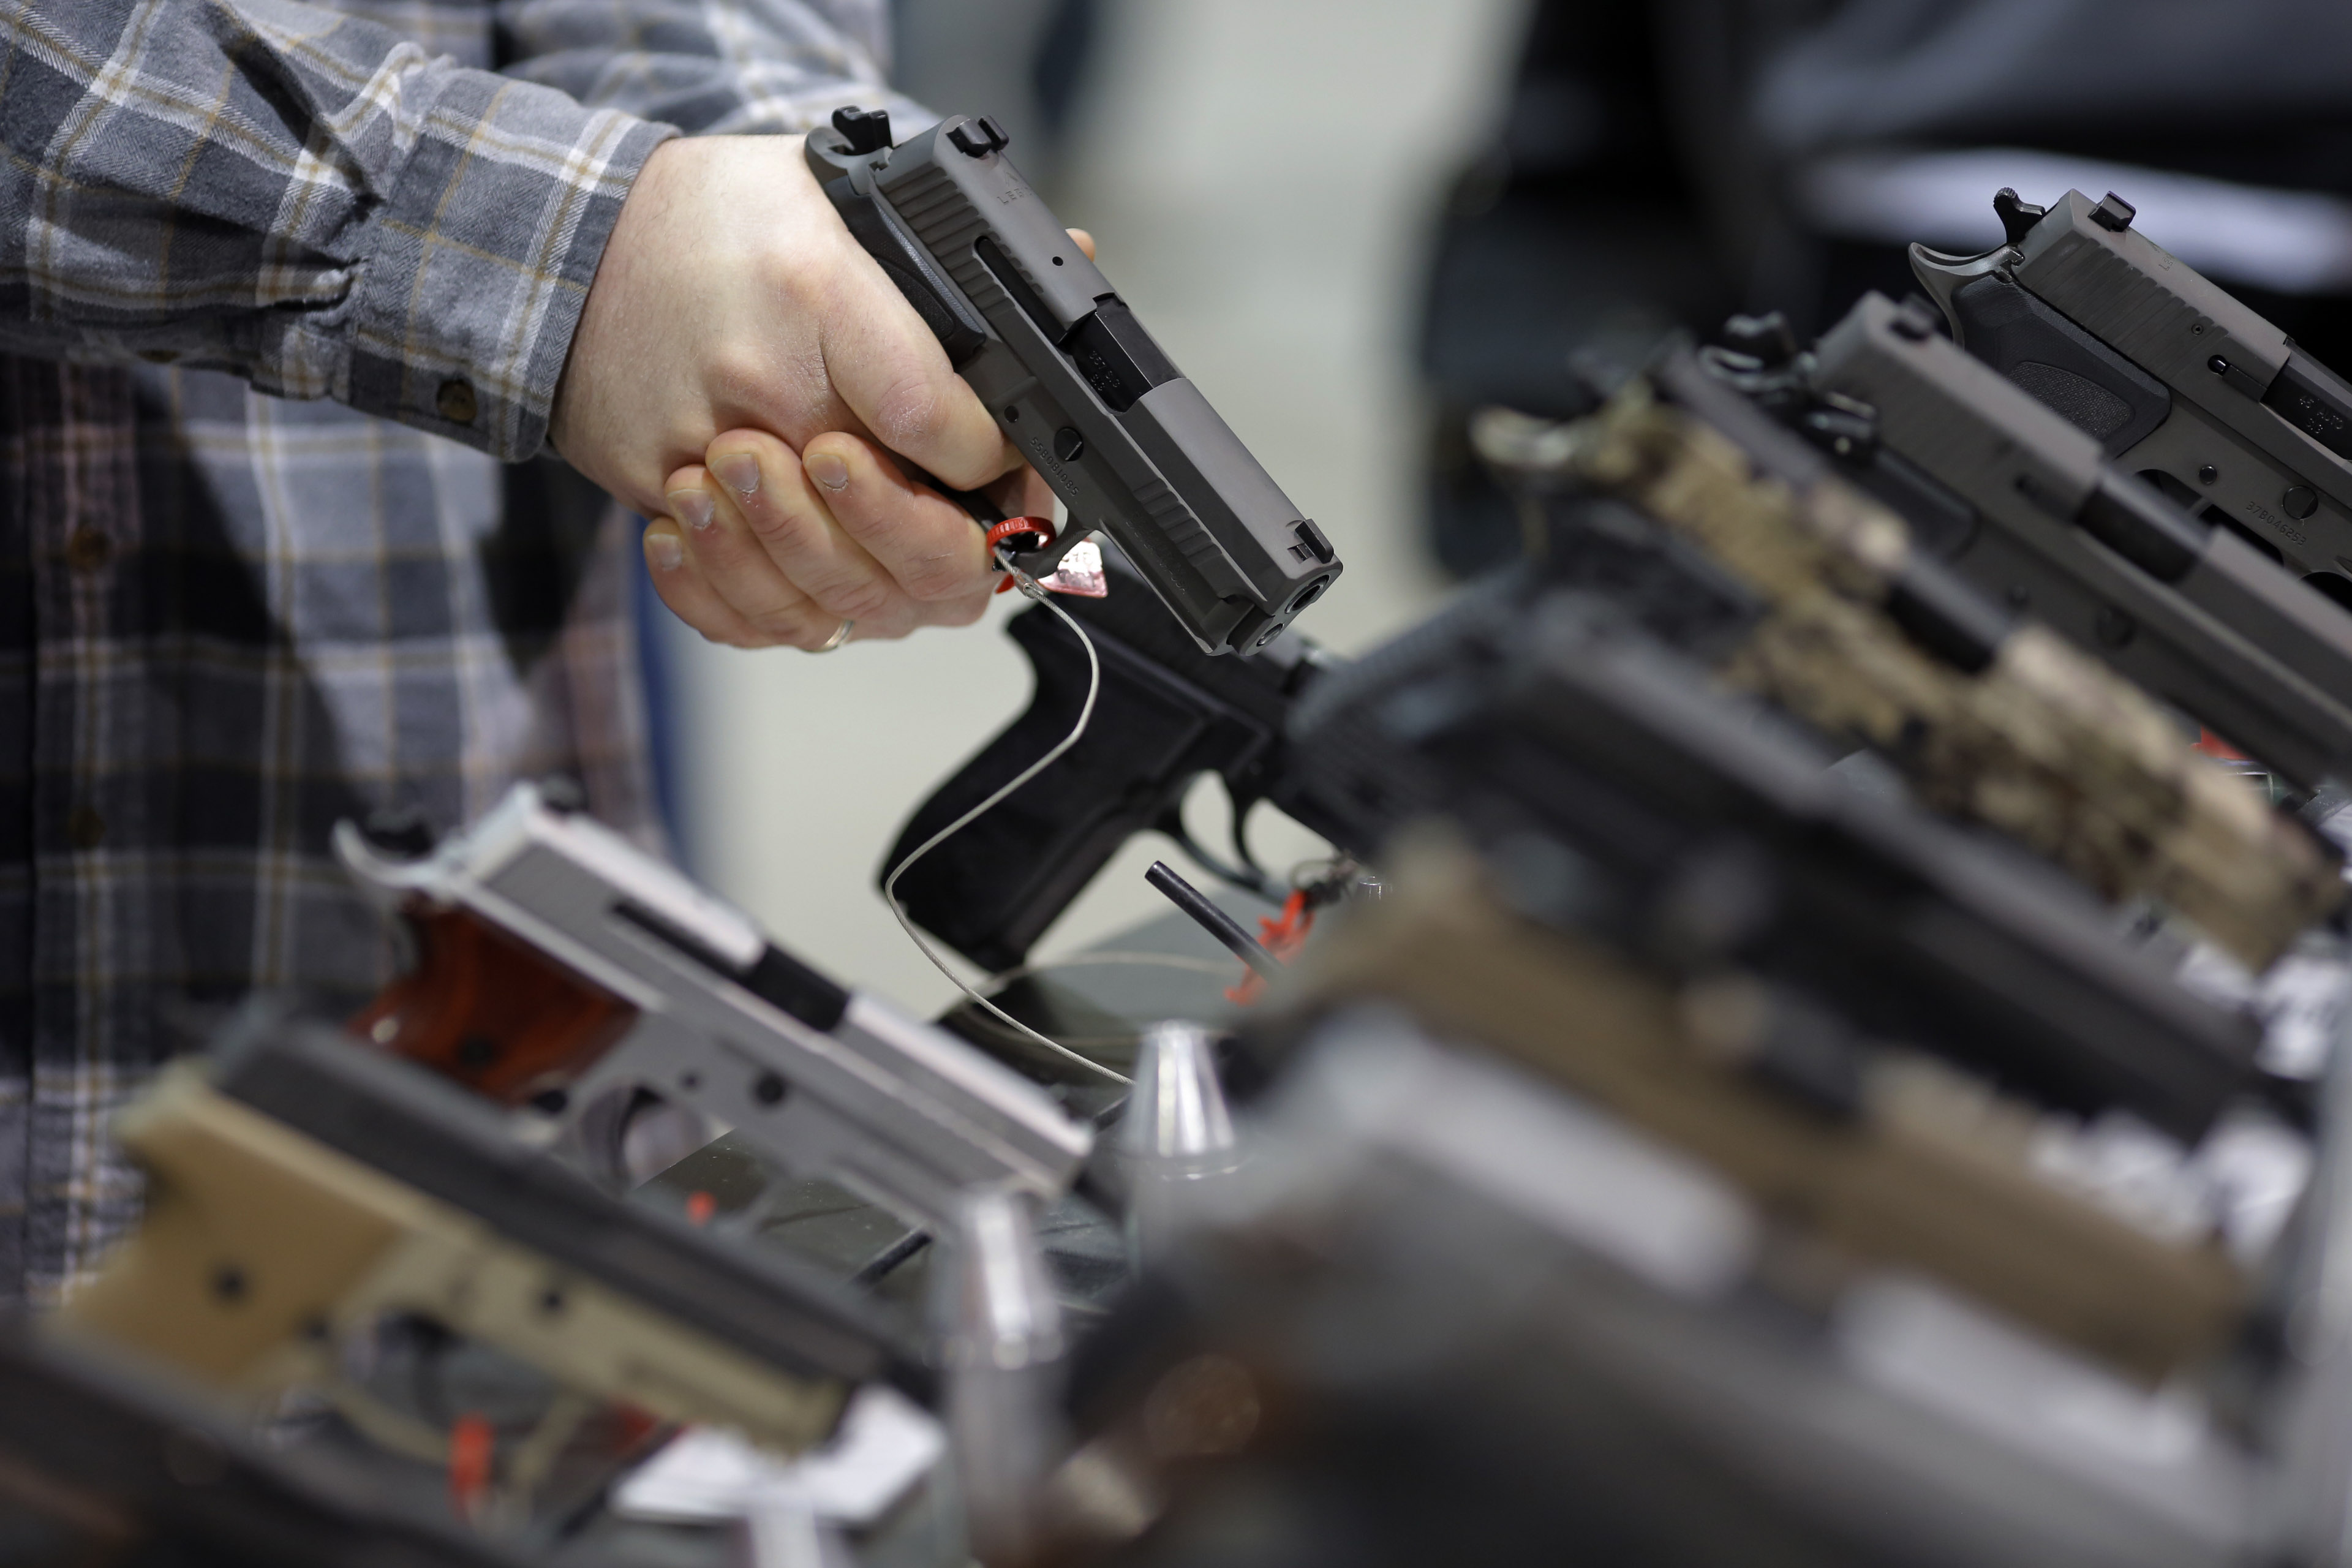 A visitor holds a pistol at a gun display during a National Rifle Association outdoor sports trade show on February 10, 2017 in Harrisburg, Pennsylvania.